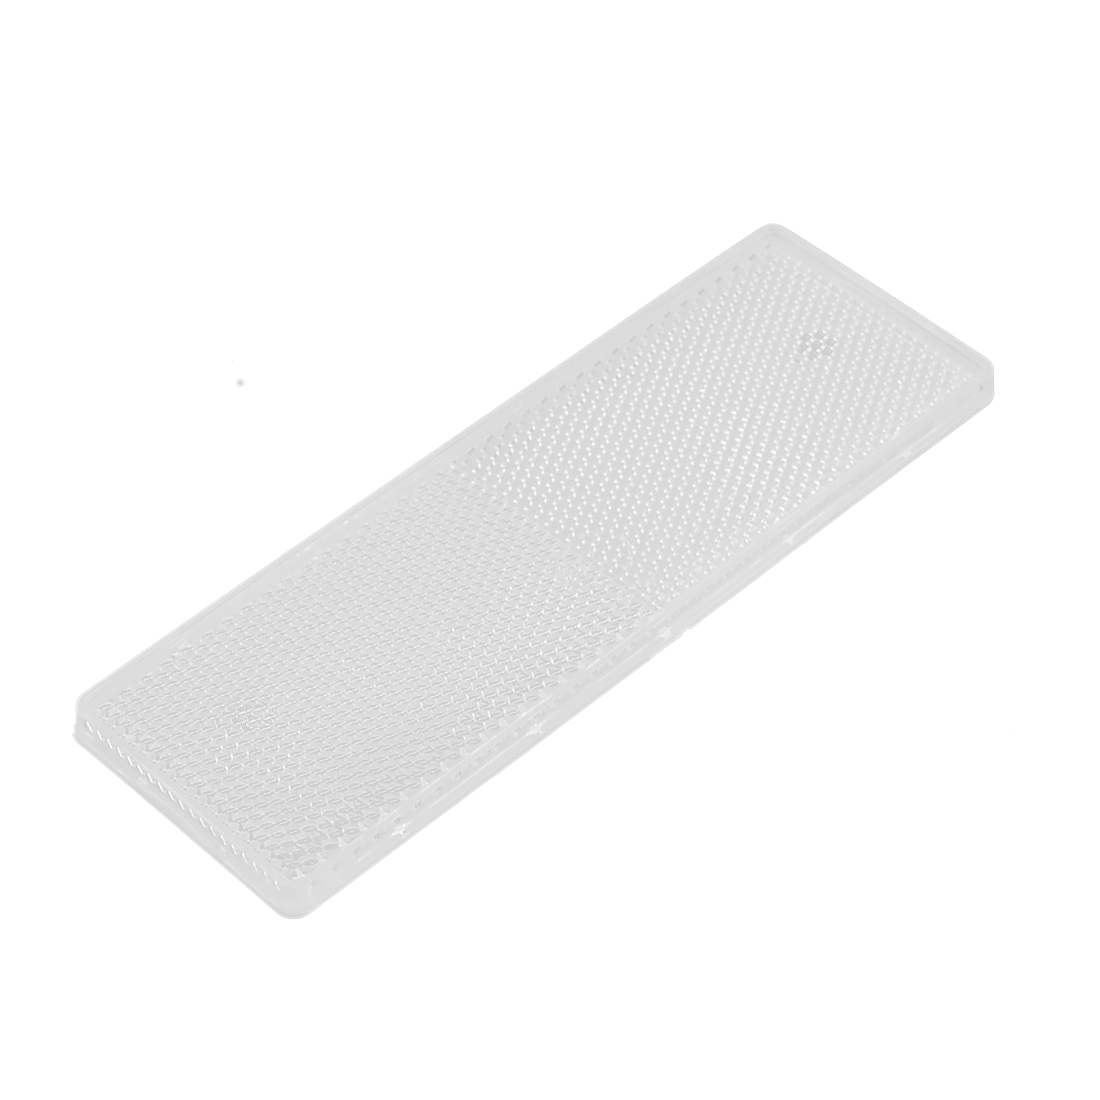 Plastic Rectangle Reflective Warning Reflector White for Vehicle Safety